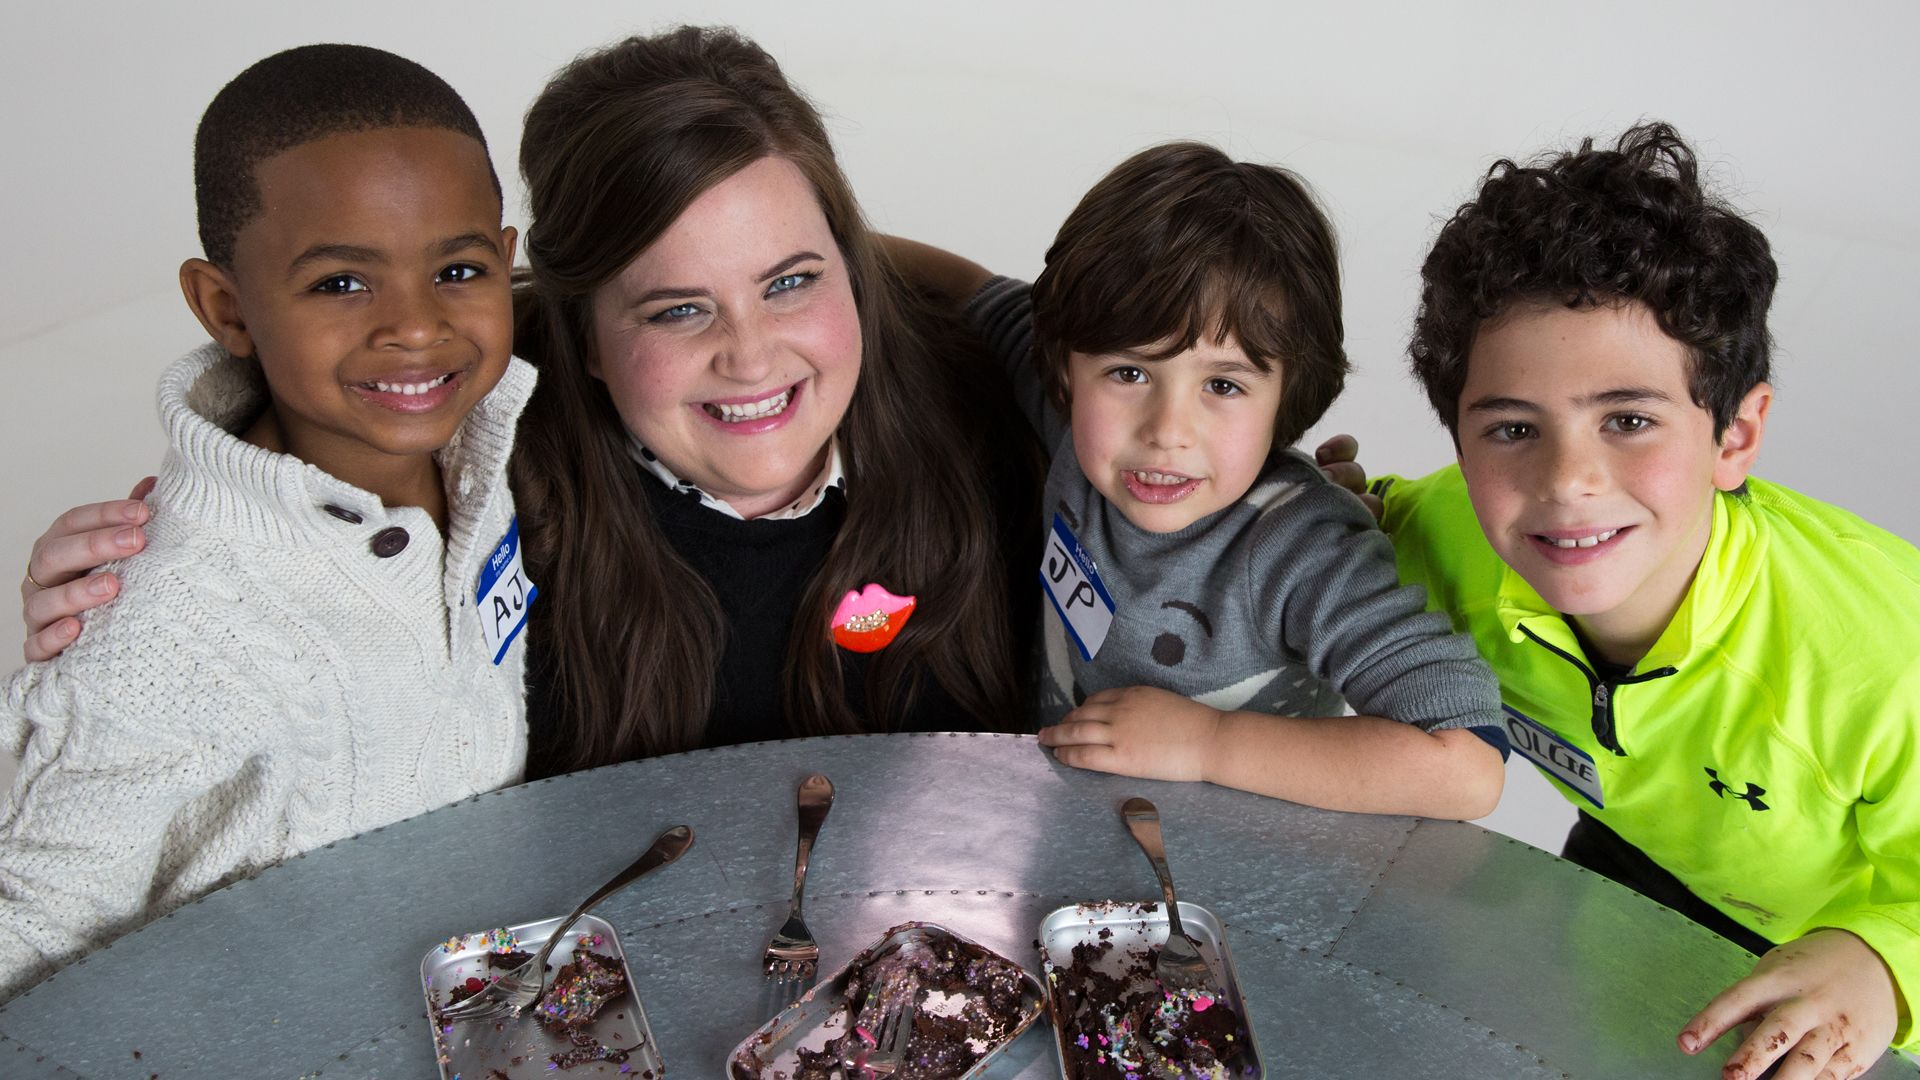 Easy-Bake Oven Master Class with Aidy Bryant